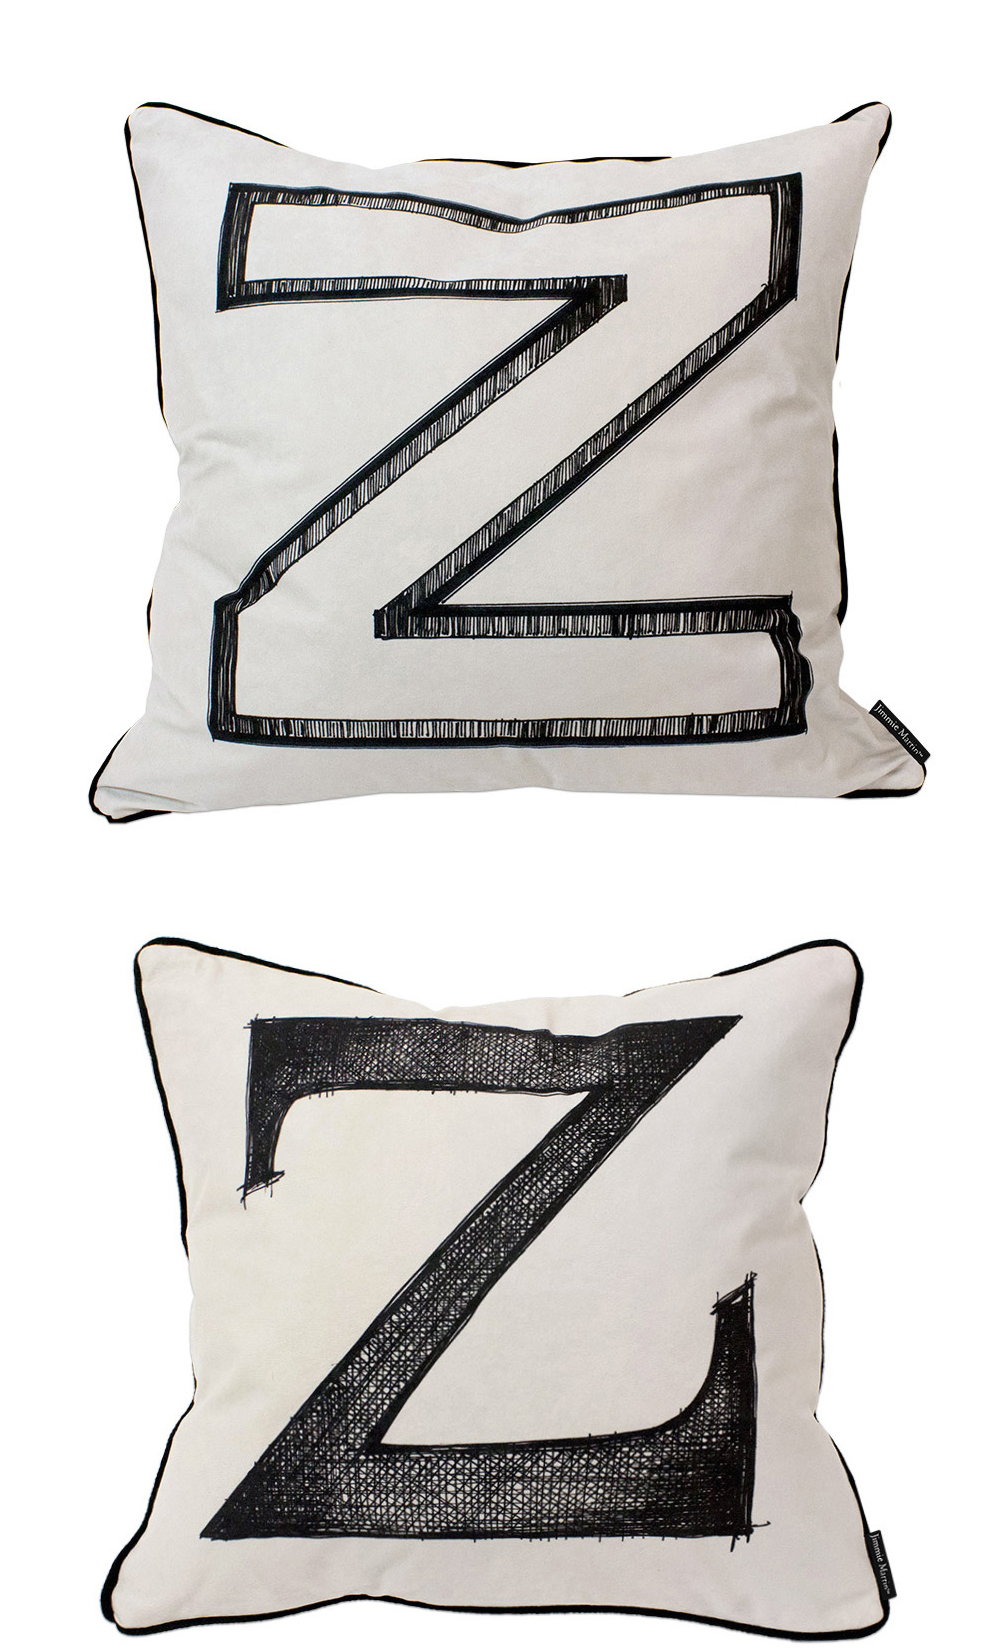 Jimmie Martin Z cushions - Designed using original Jimmie Martin art work, these bold graphic cushions are packed full of 'Baroque n' Roll' style.From £95.00Available at www.jimmiemartin.com